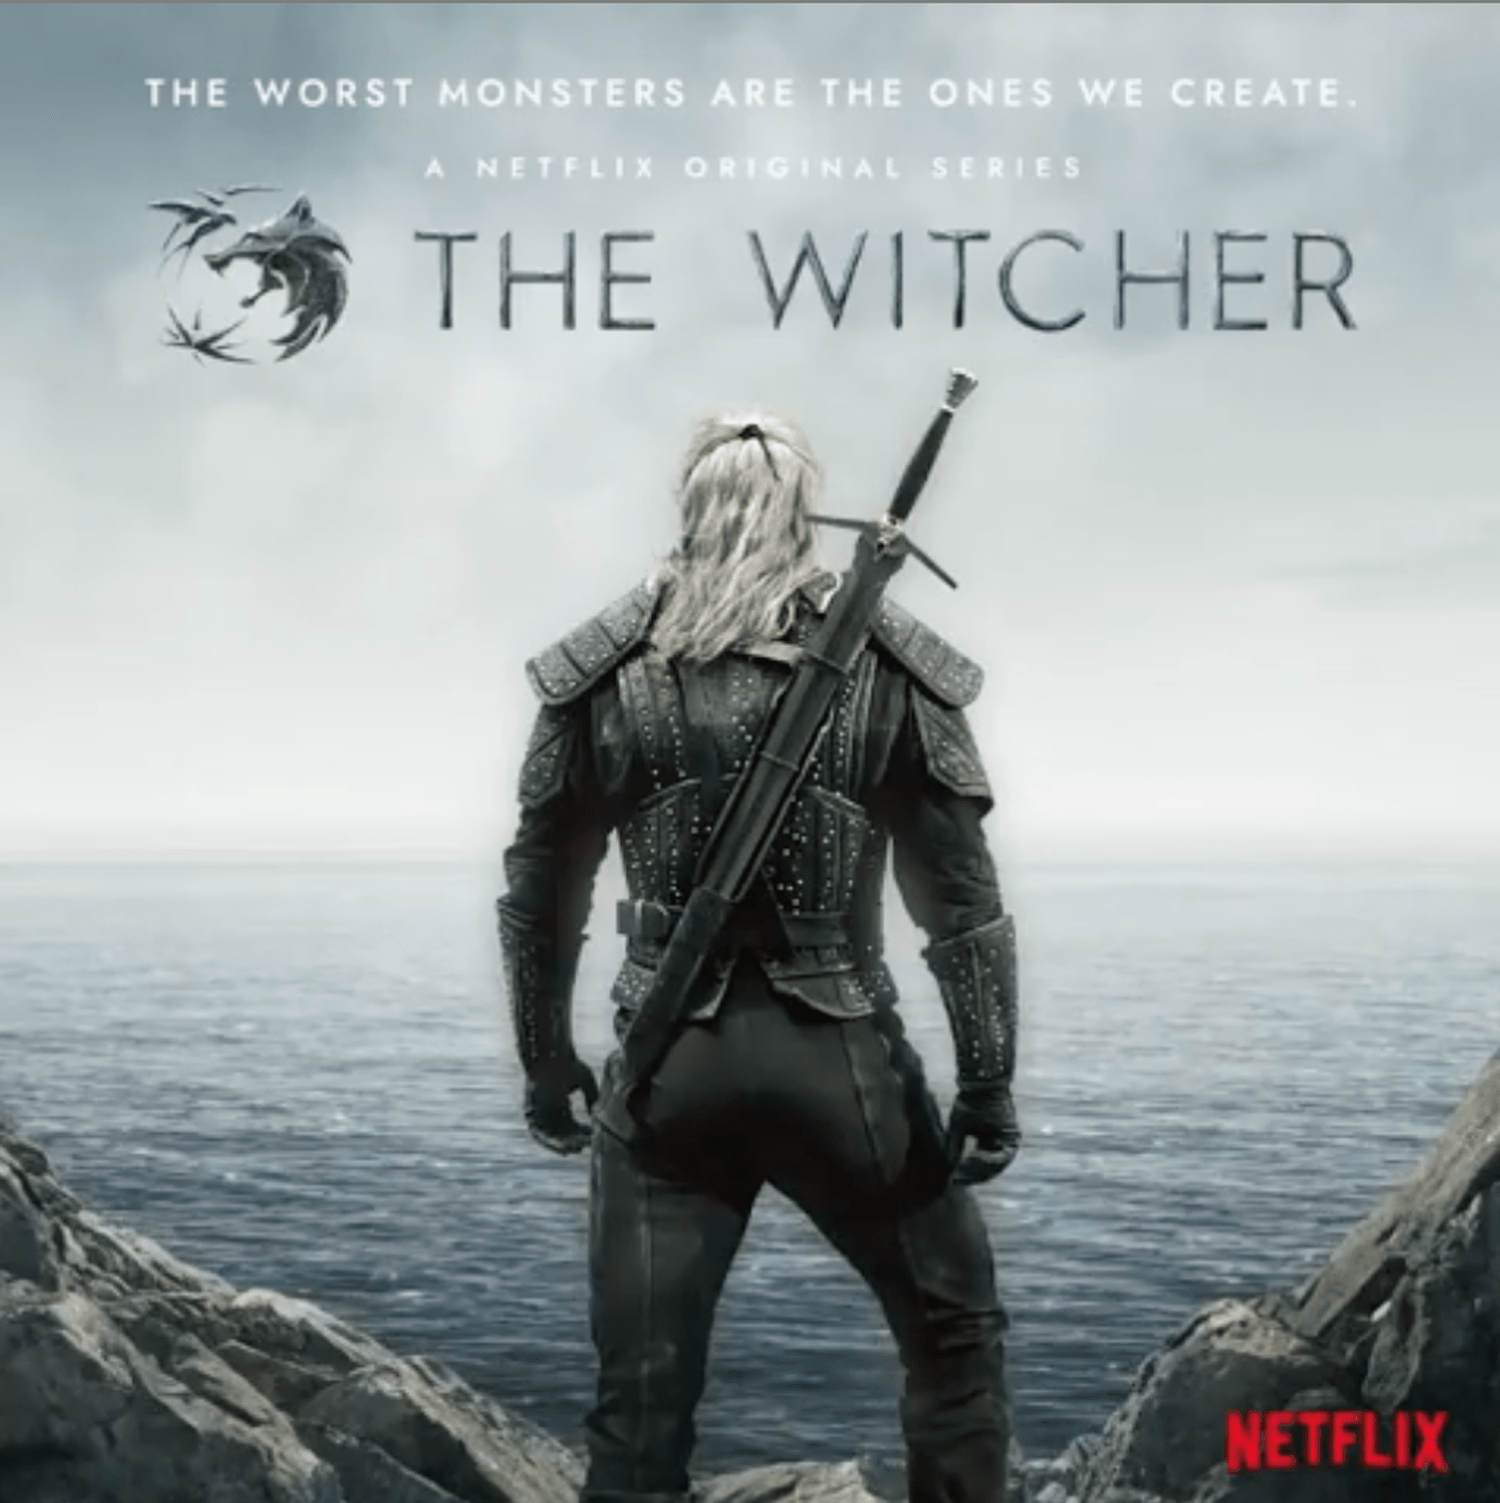 Netflix's The Witcher coming soon end of 2019